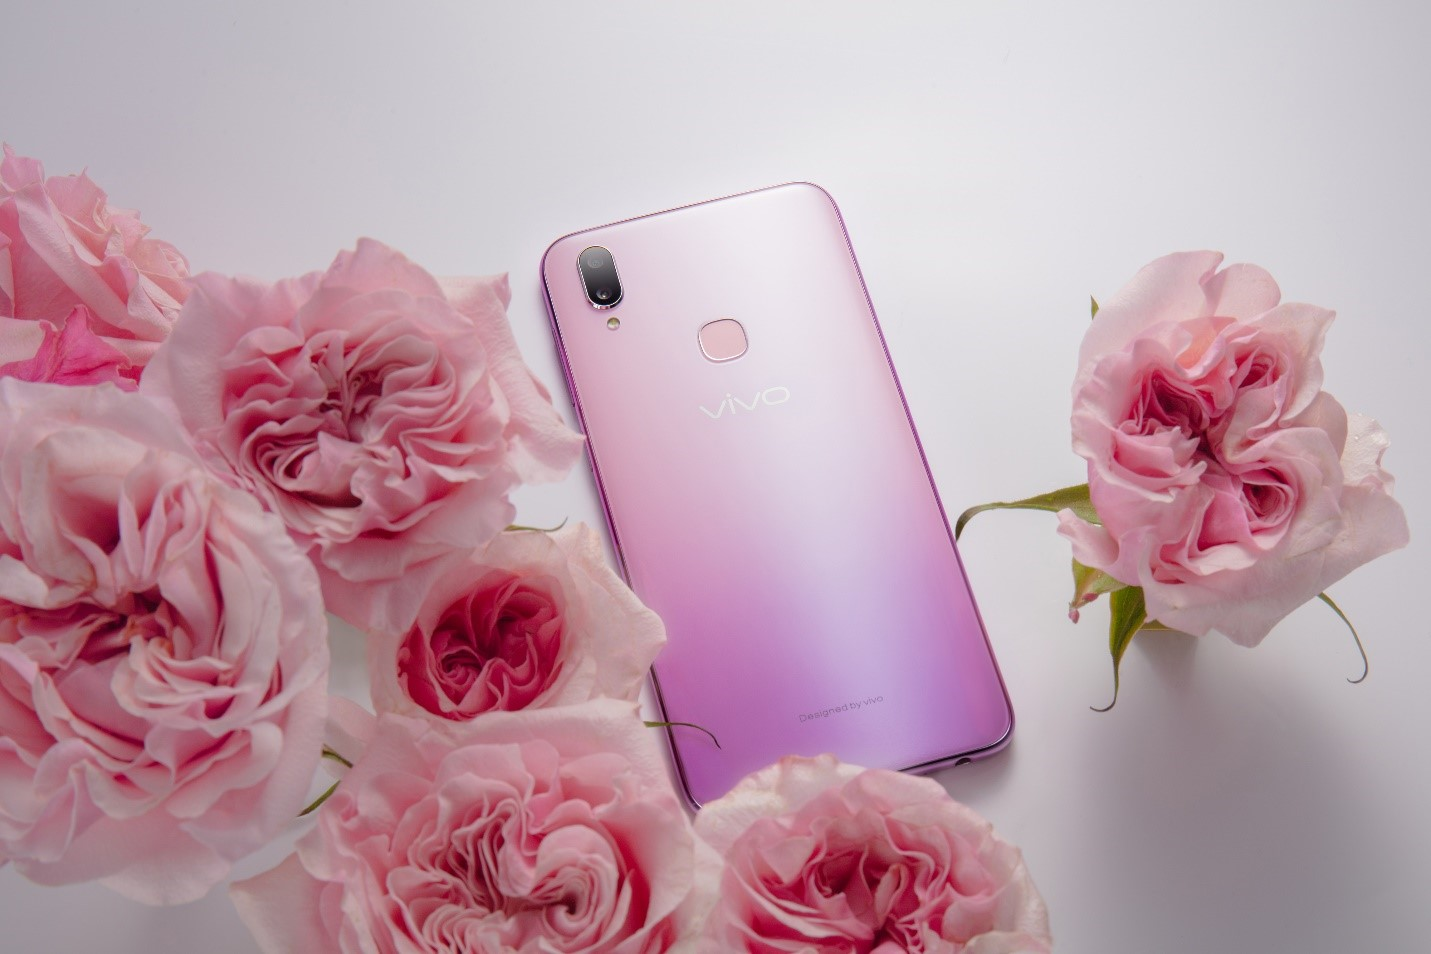 The Limited Edition Vivo V11i in Fairy Pink Will Make All Your Wishes Come True